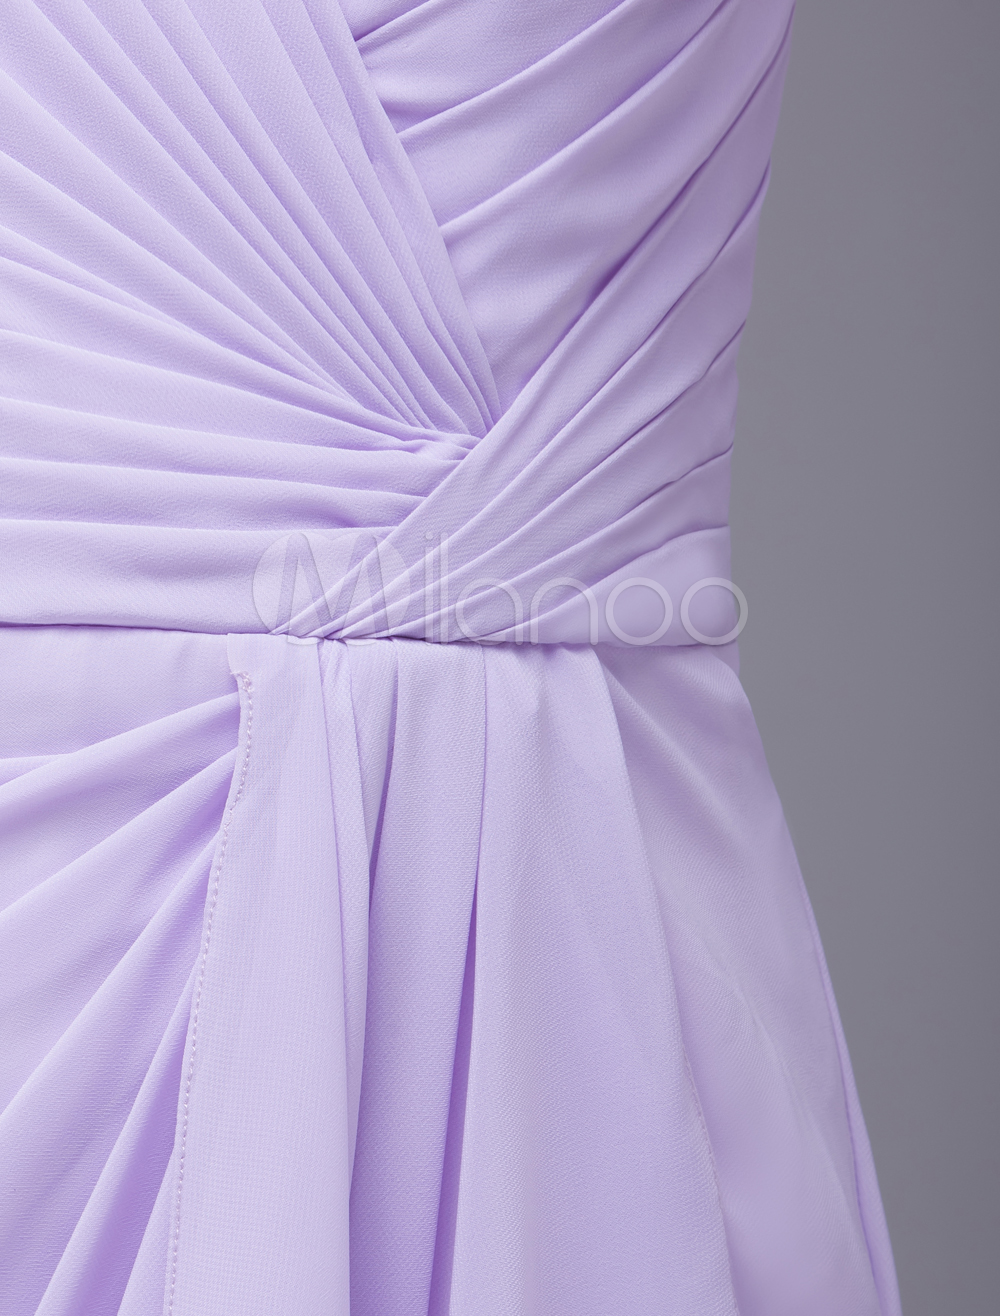 China Wholesale Clothes - Light Purple V-Neck Ruched Chiffon Mother of the Bride Dress